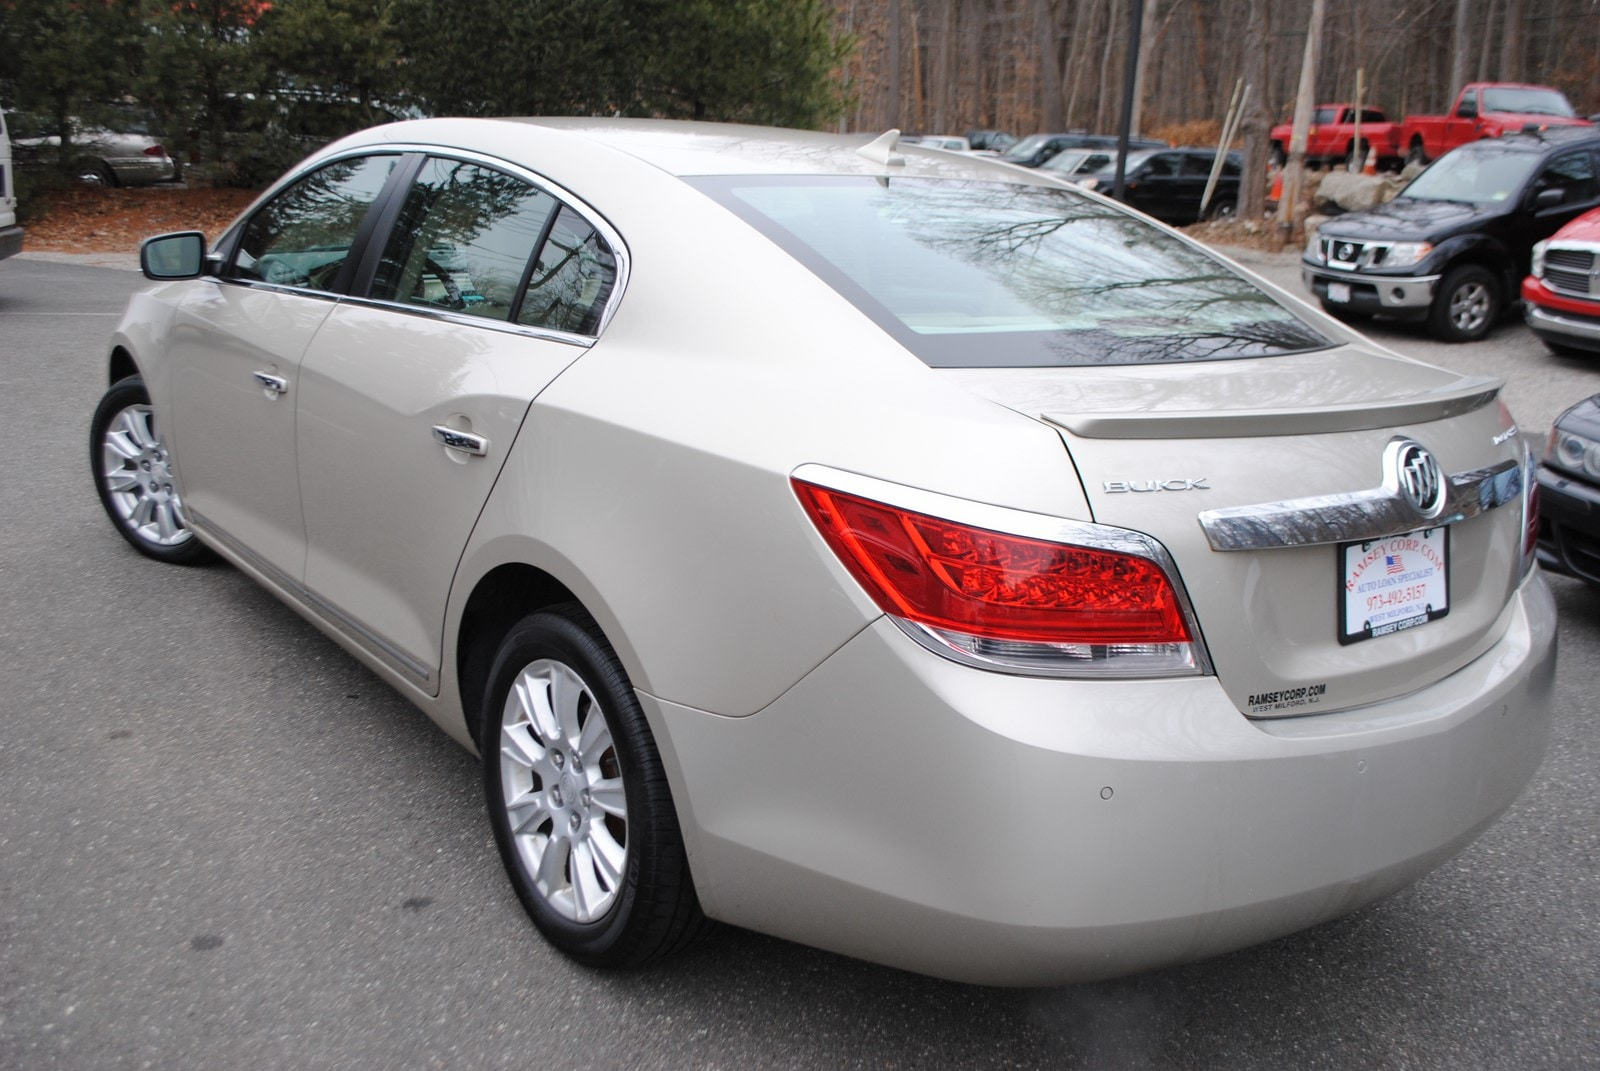 Buick Century Parts Diagram Also 2012 Buick Lacrosse Parts Diagram On